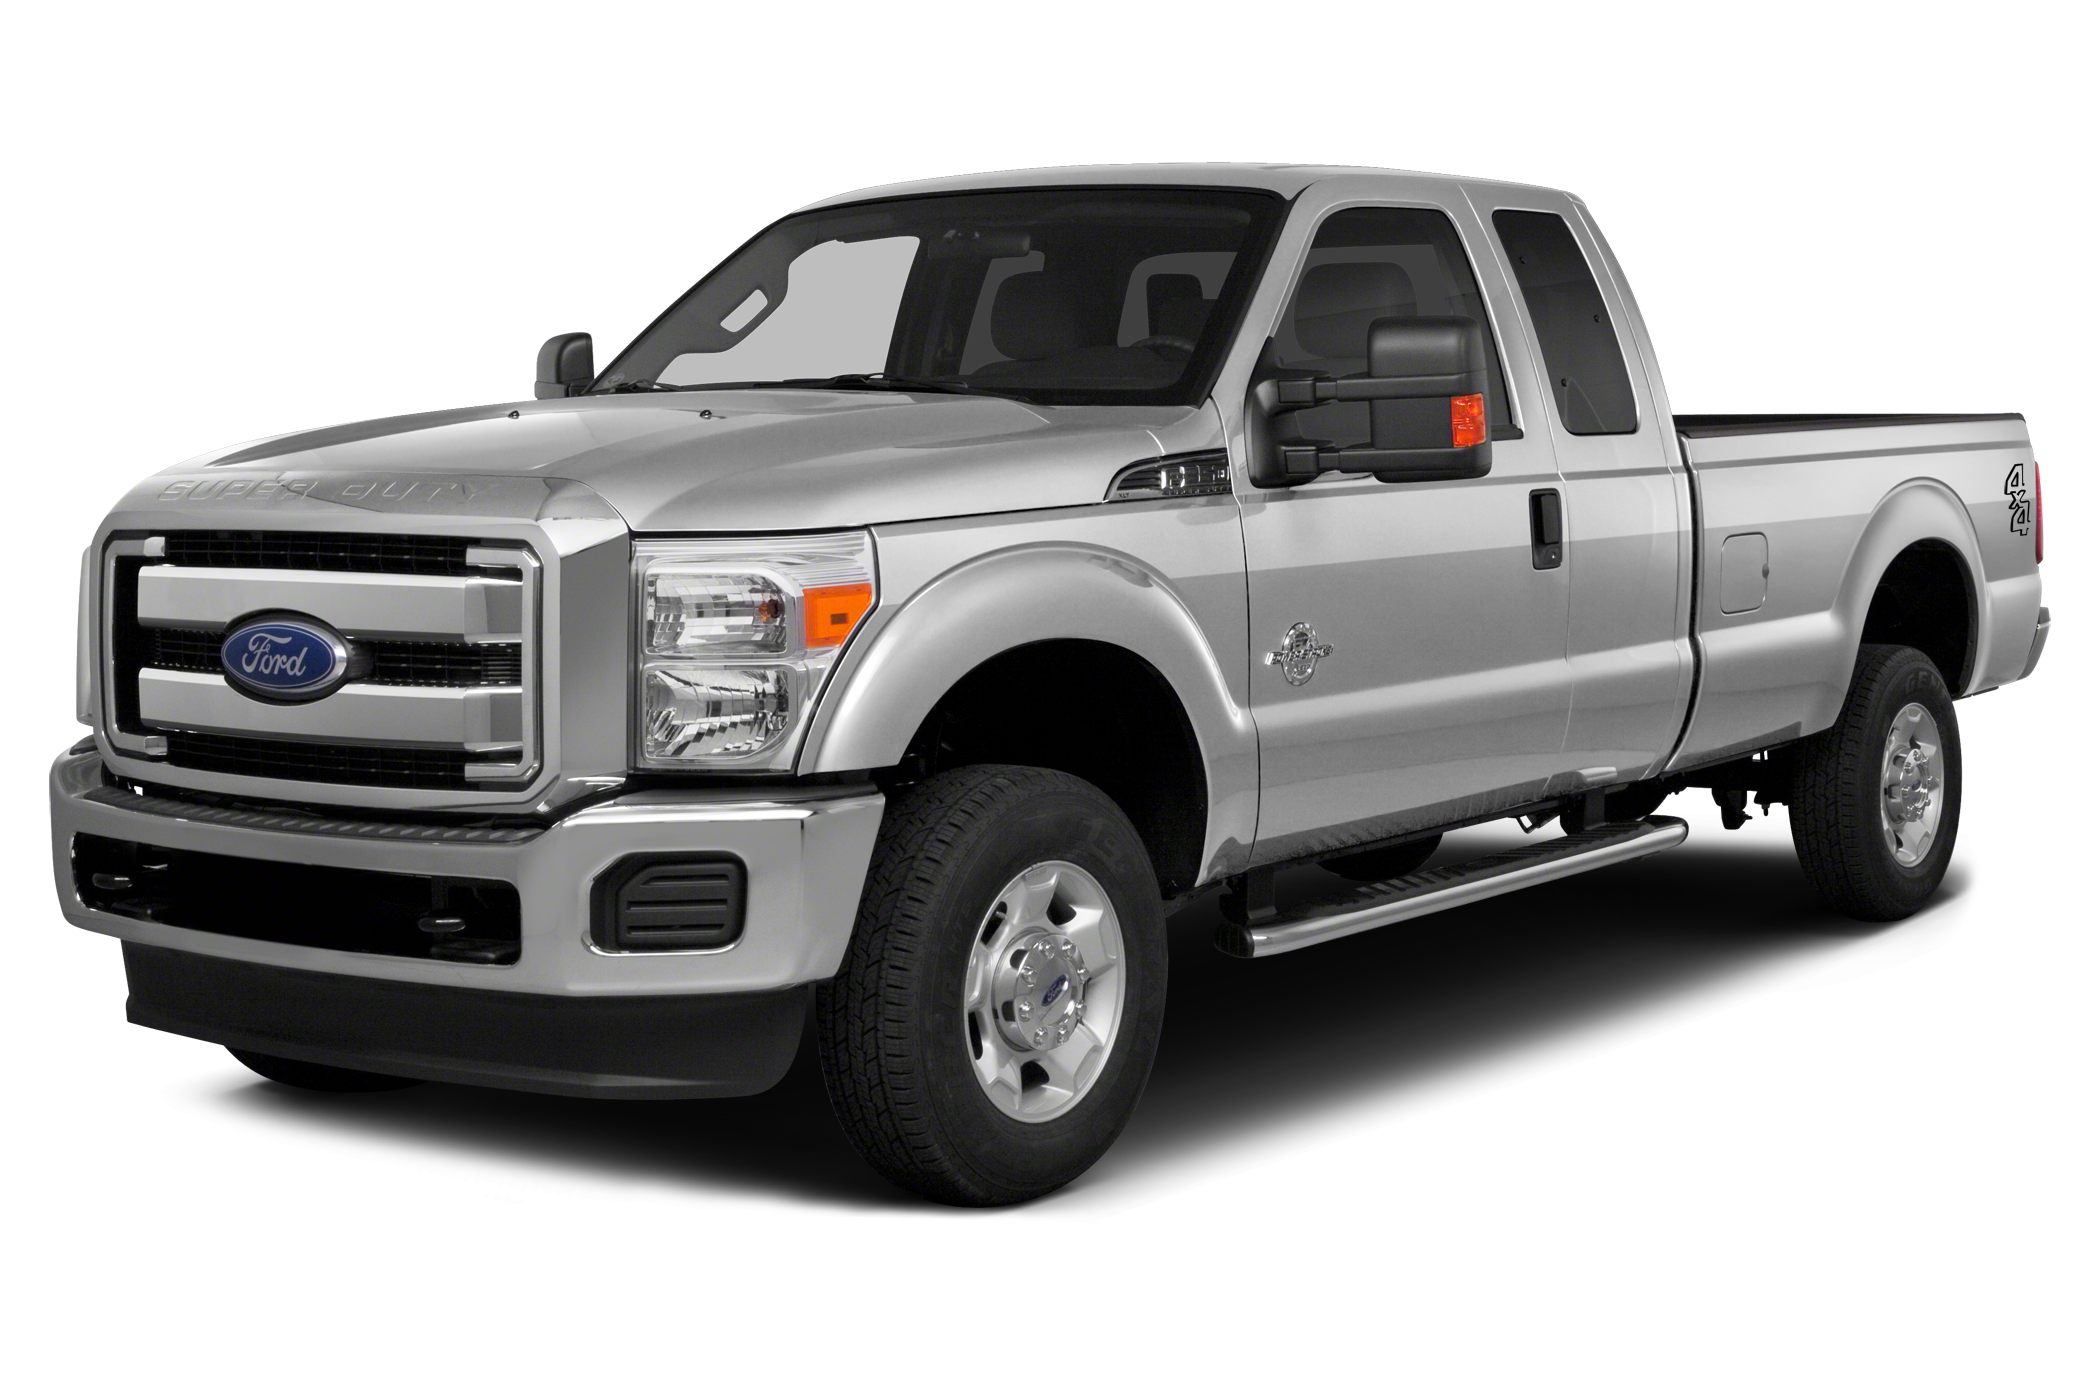 f hatter mad features prevnext superduty lead the ford